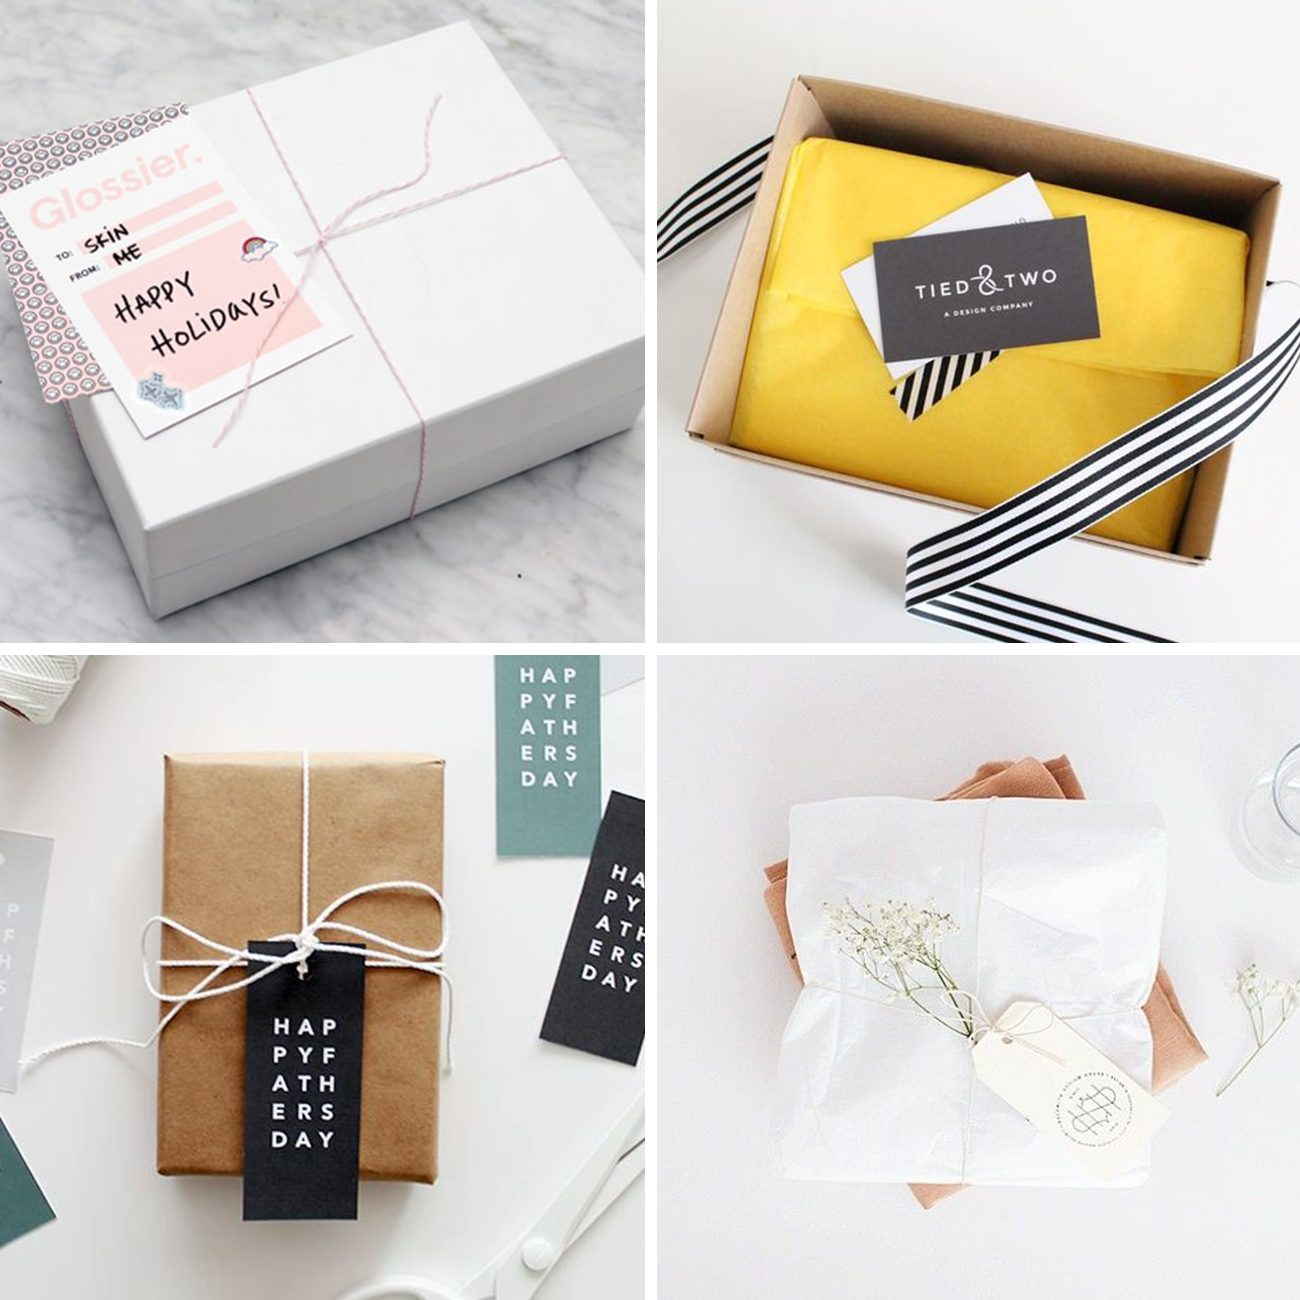 Photos via: —, Glossier, Tied & Two, Almost Makes Perfect, Oh So Pretty 90 Ideas to Spruce Up Your Holiday Packaging Design